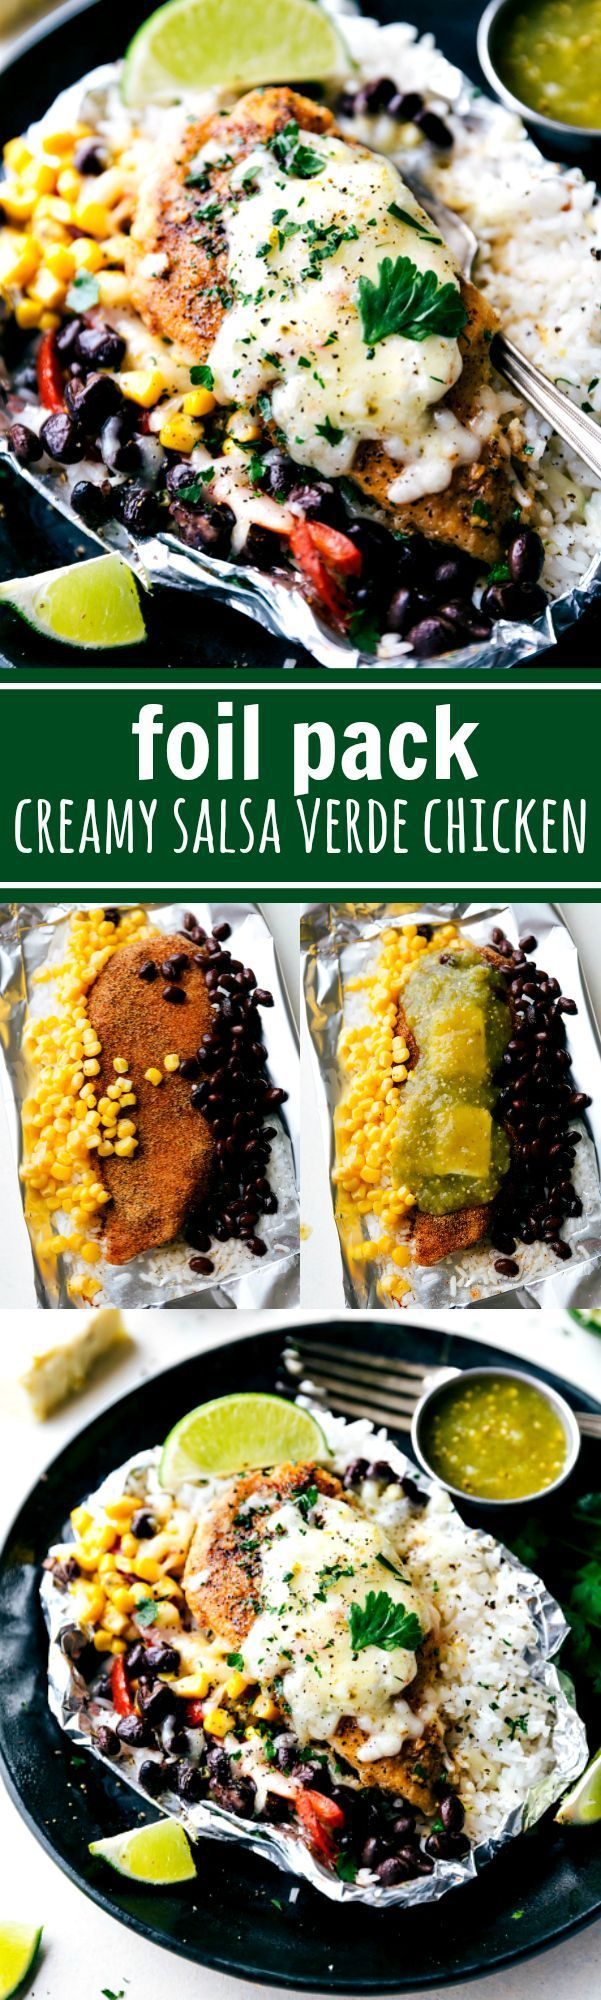 EASY FOIL PACKET Creamy salsa verde chicken with rice and veggies all cooked at once in a foil packet! No need to pre-cook the rice or chicken. This dish takes no more than 10 minutes to assemble and is bursting with delicious Mexican flavor! Also, make these packets into TACOS for another quick and easy dinner.